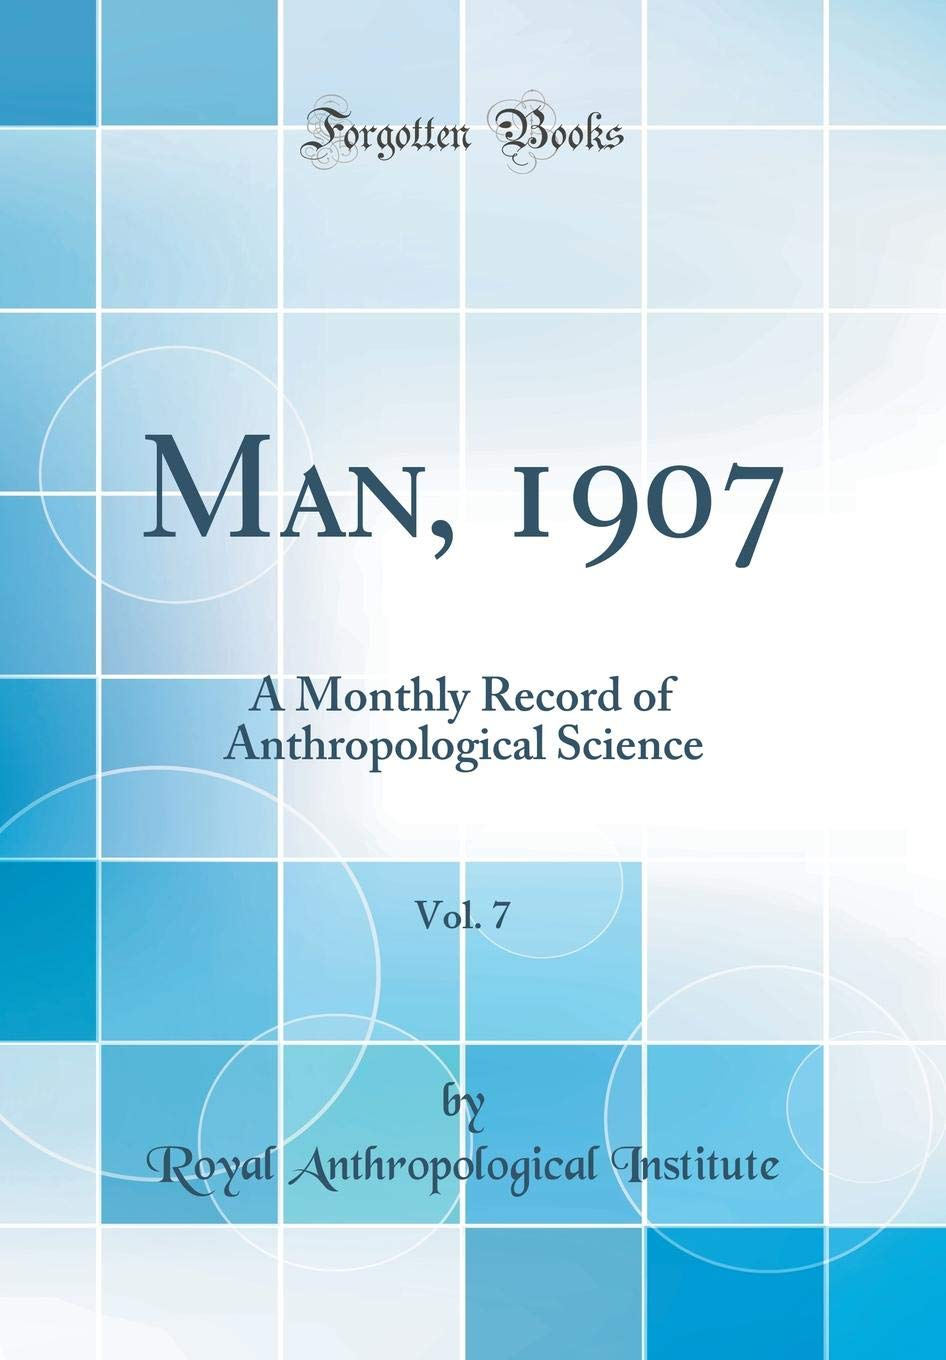 Man, 1907, Vol. 7: A Monthly Record of Anthropological Science (Classic Reprint) ebook